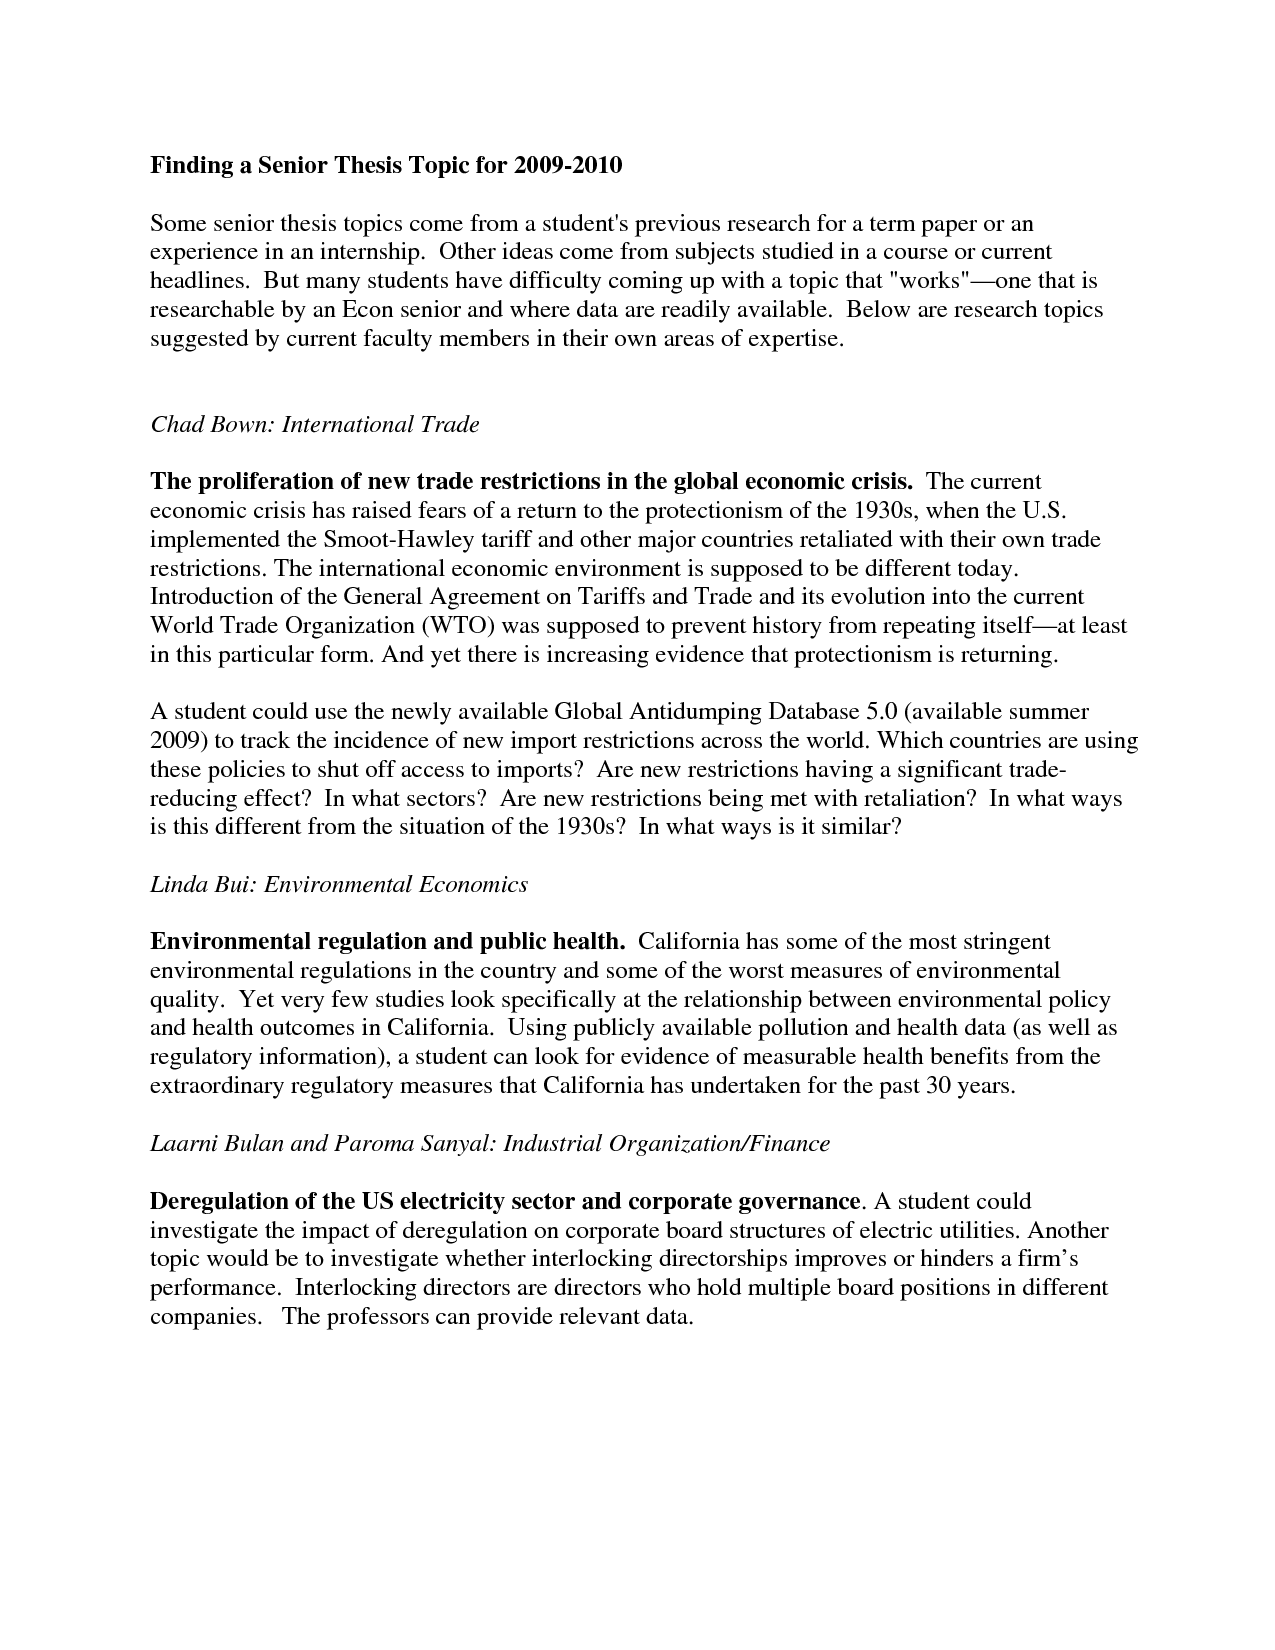 007 Research Paper 1cct5dxadq Great Topics For Astounding College History Students Level Full